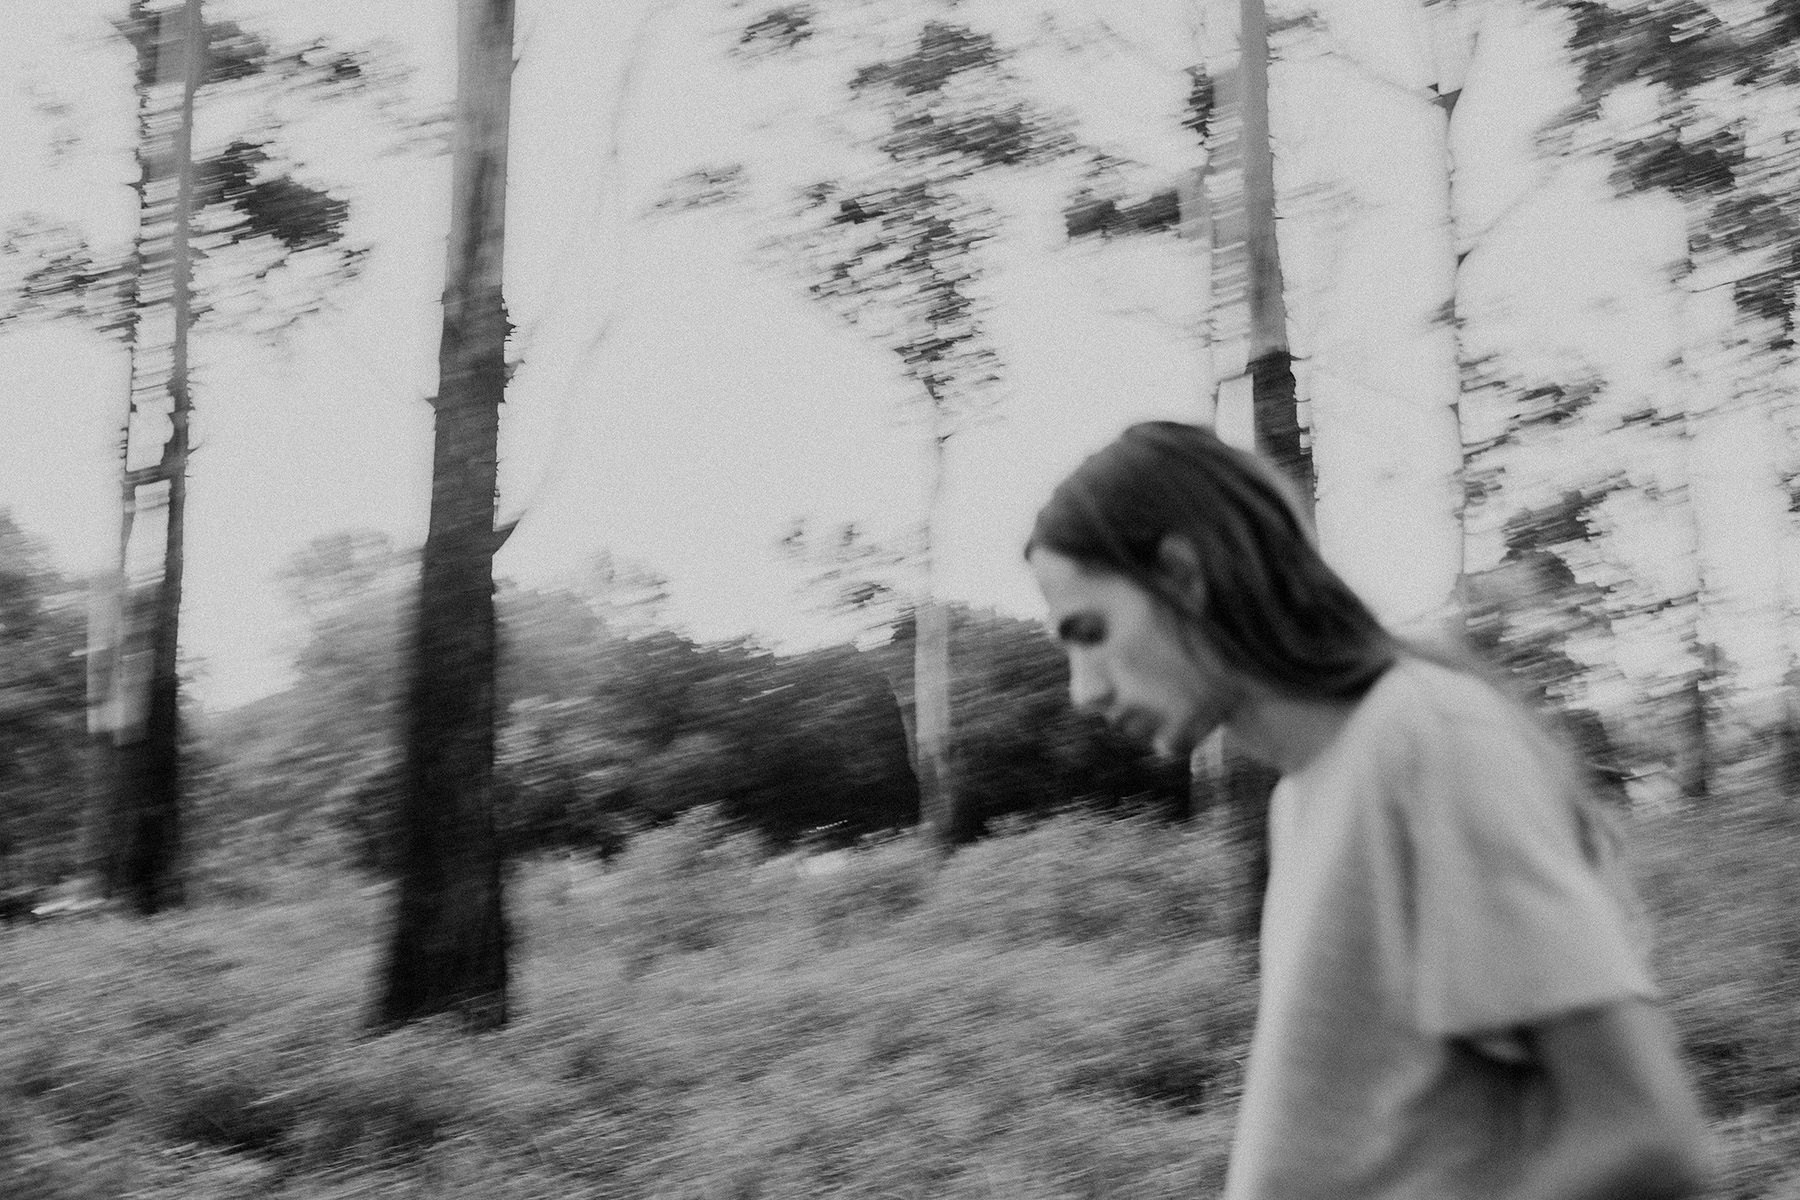 Blurry black and white image of hippy man with long hair walking through a forest